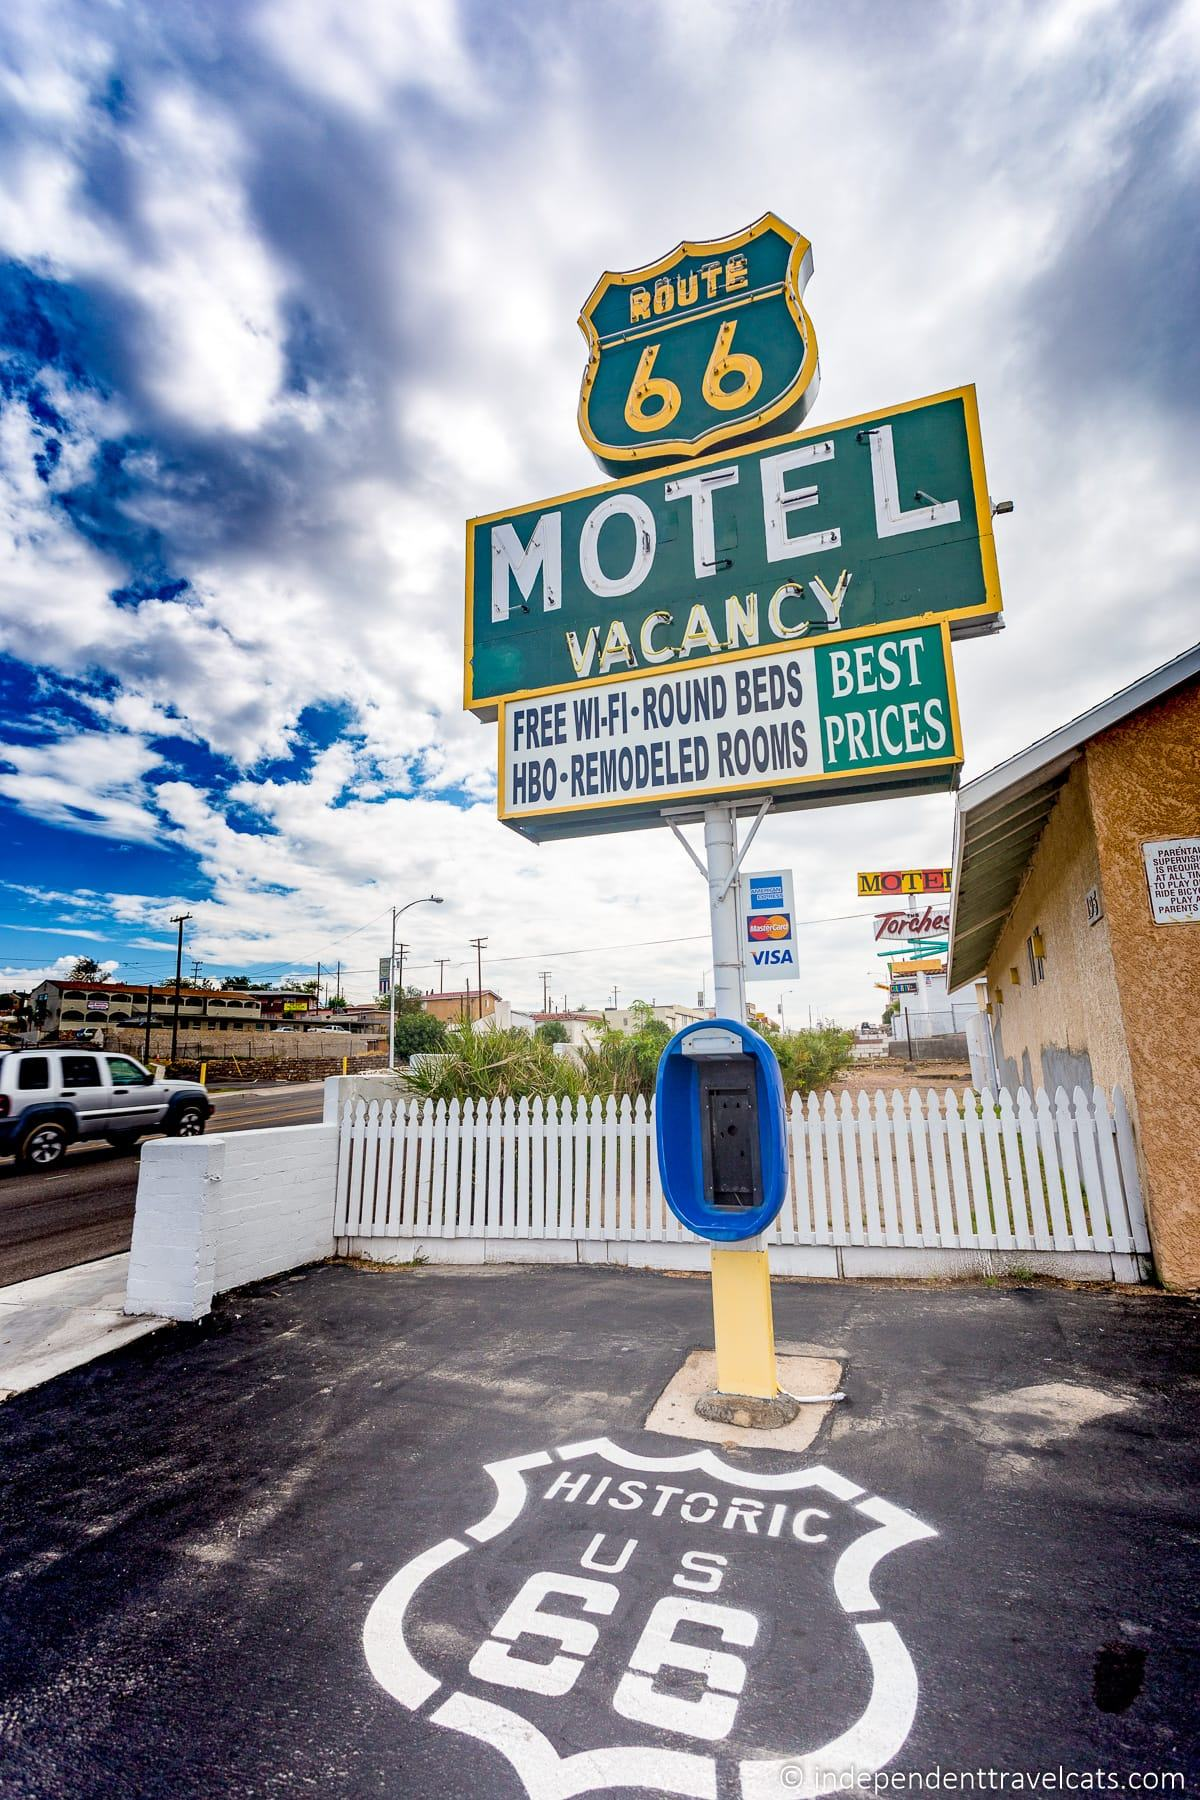 Route 66 Motel in Barstow California Route 66 motels vacancy sign